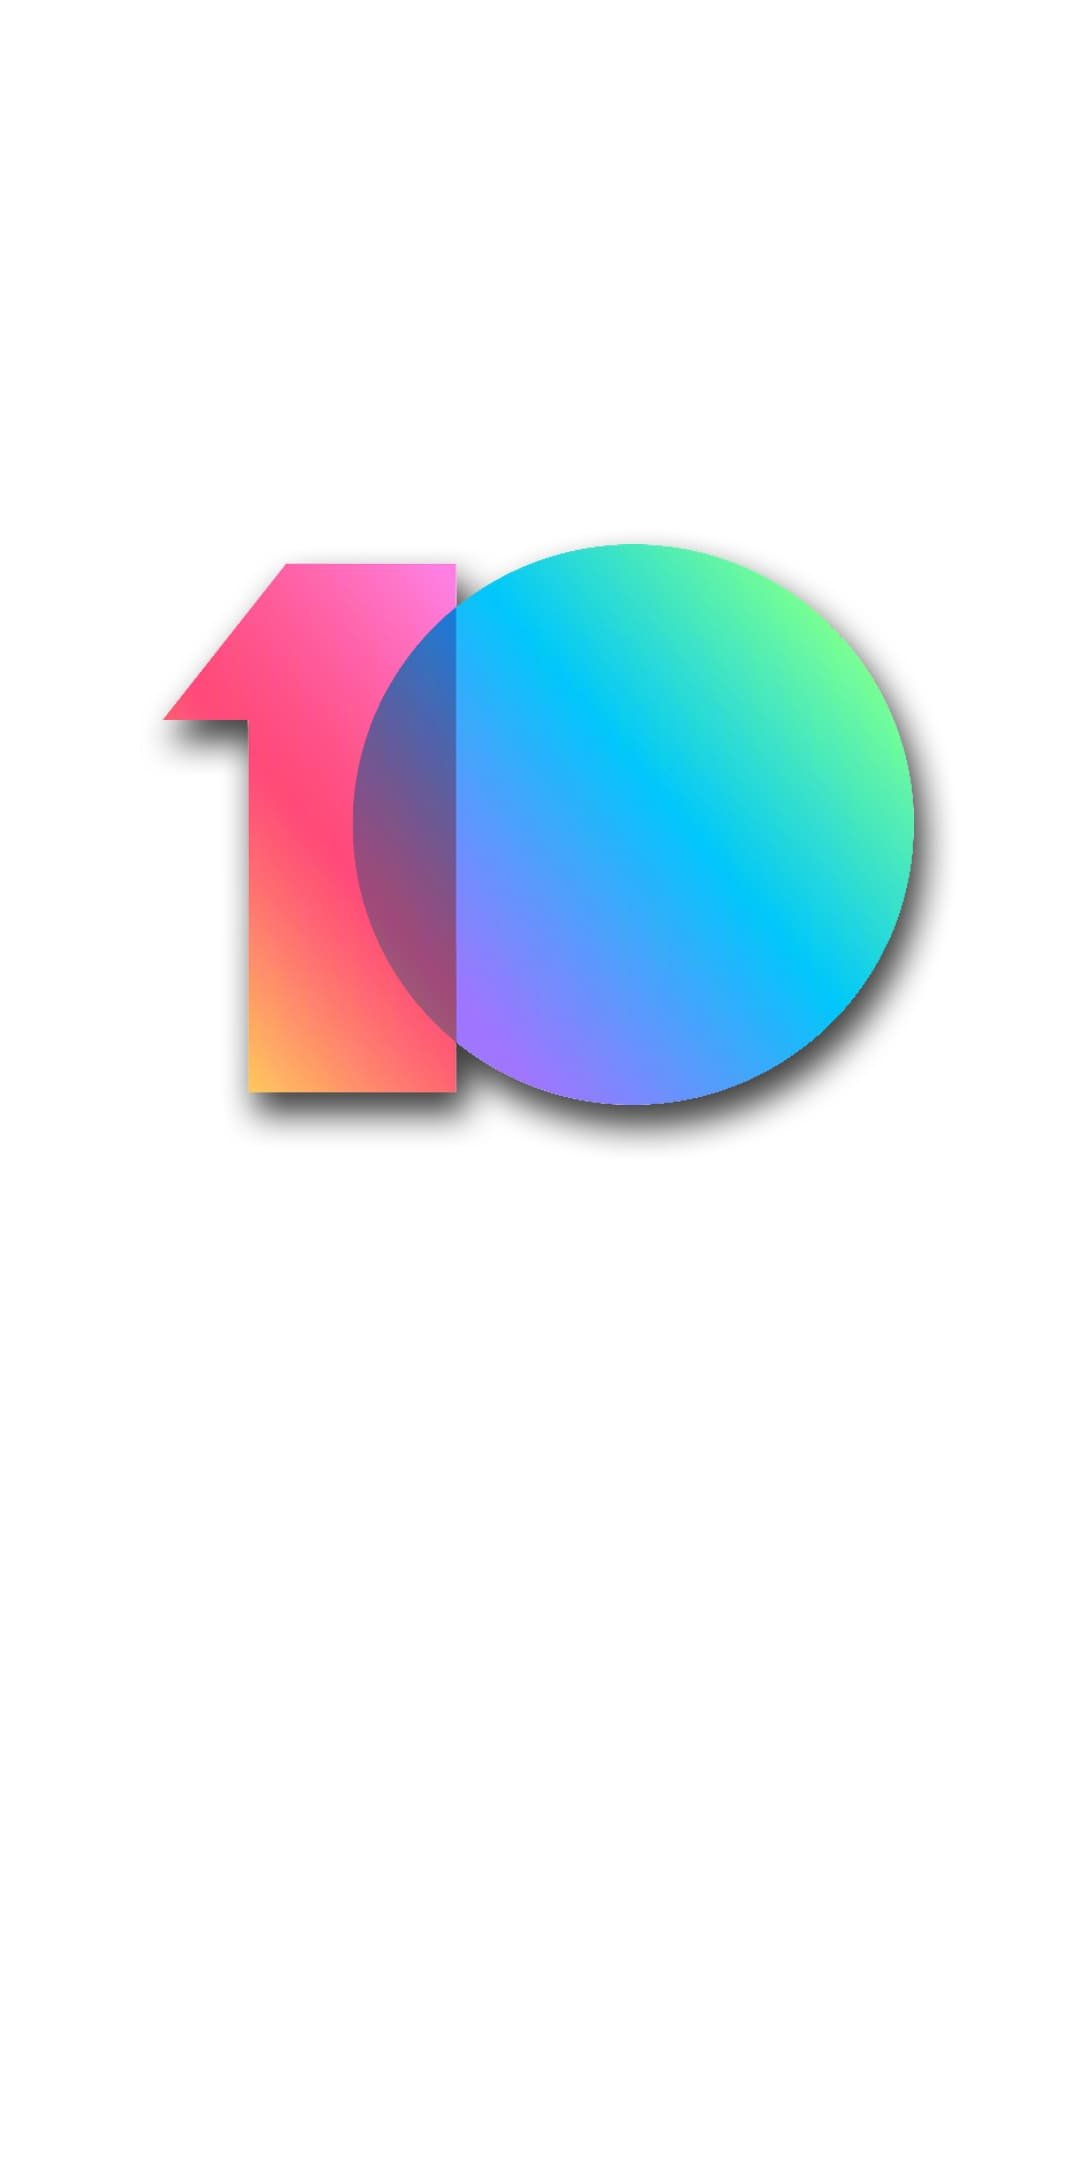 Download MIUI 10 Stock Wallpapers (Updated) | DroidViews